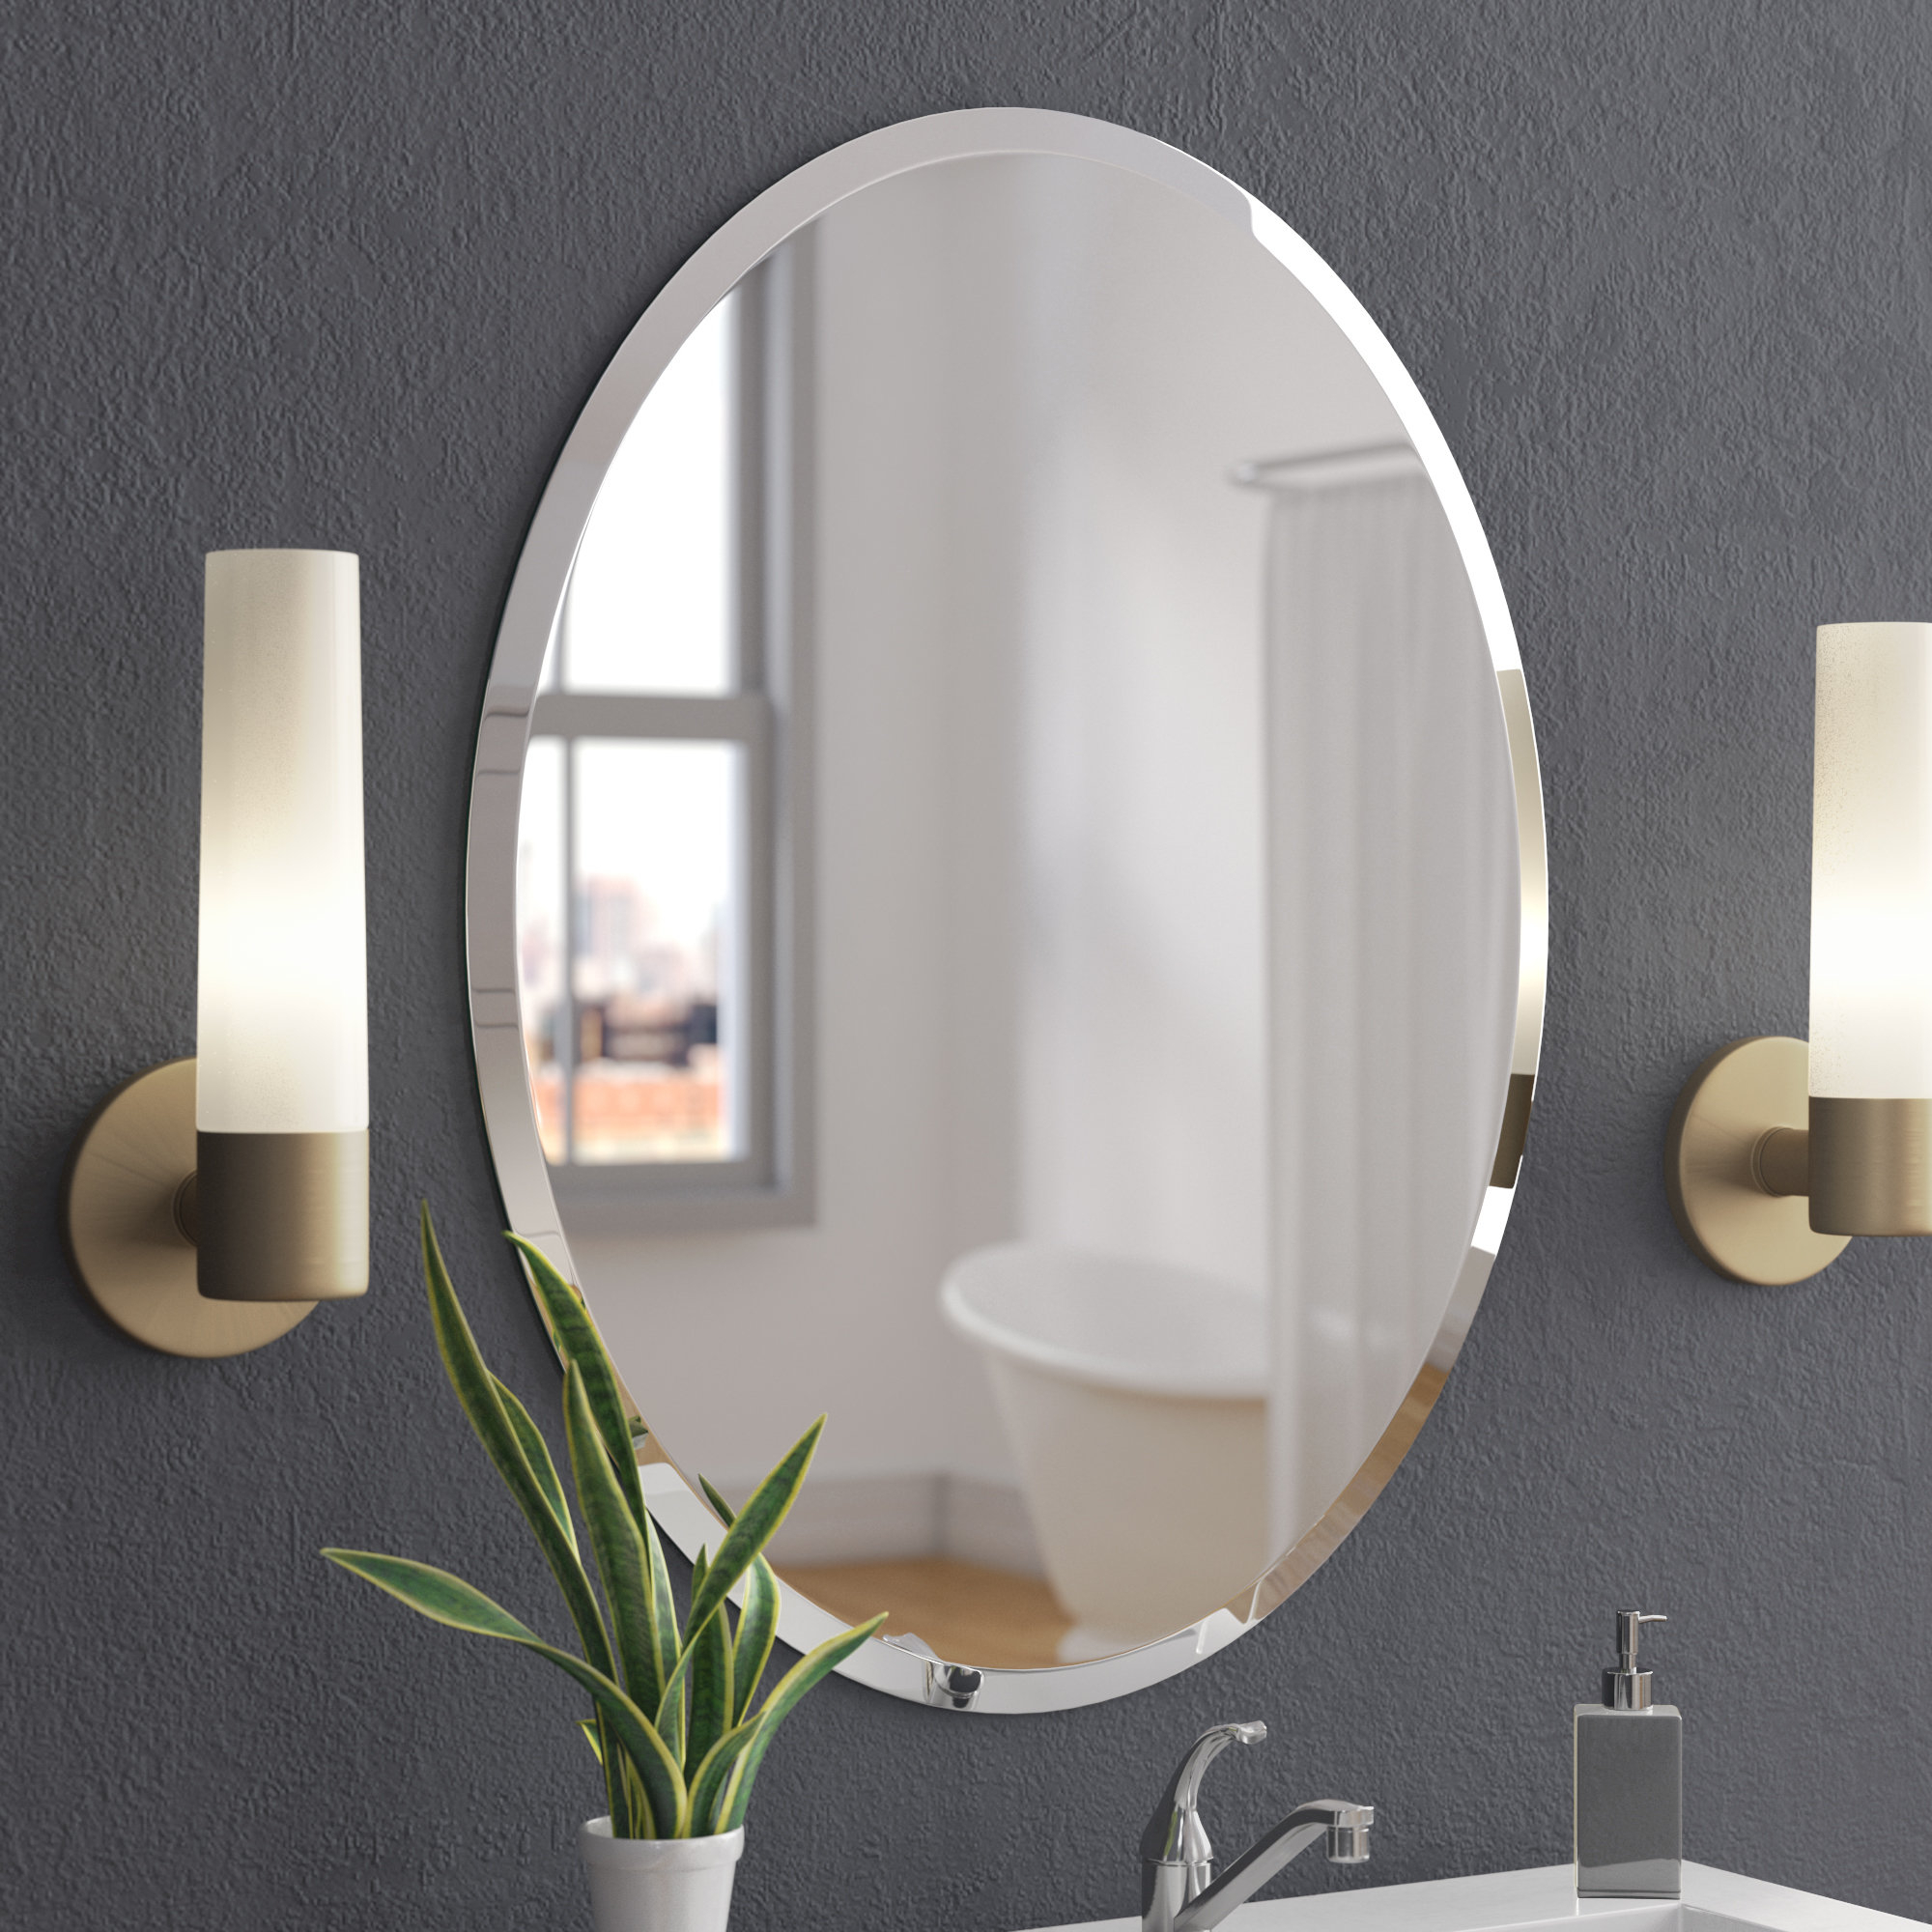 Callison Oval Bevel Frameless Wall Mirror With Regard To Thornbury Oval Bevel Frameless Wall Mirrors (Image 2 of 20)